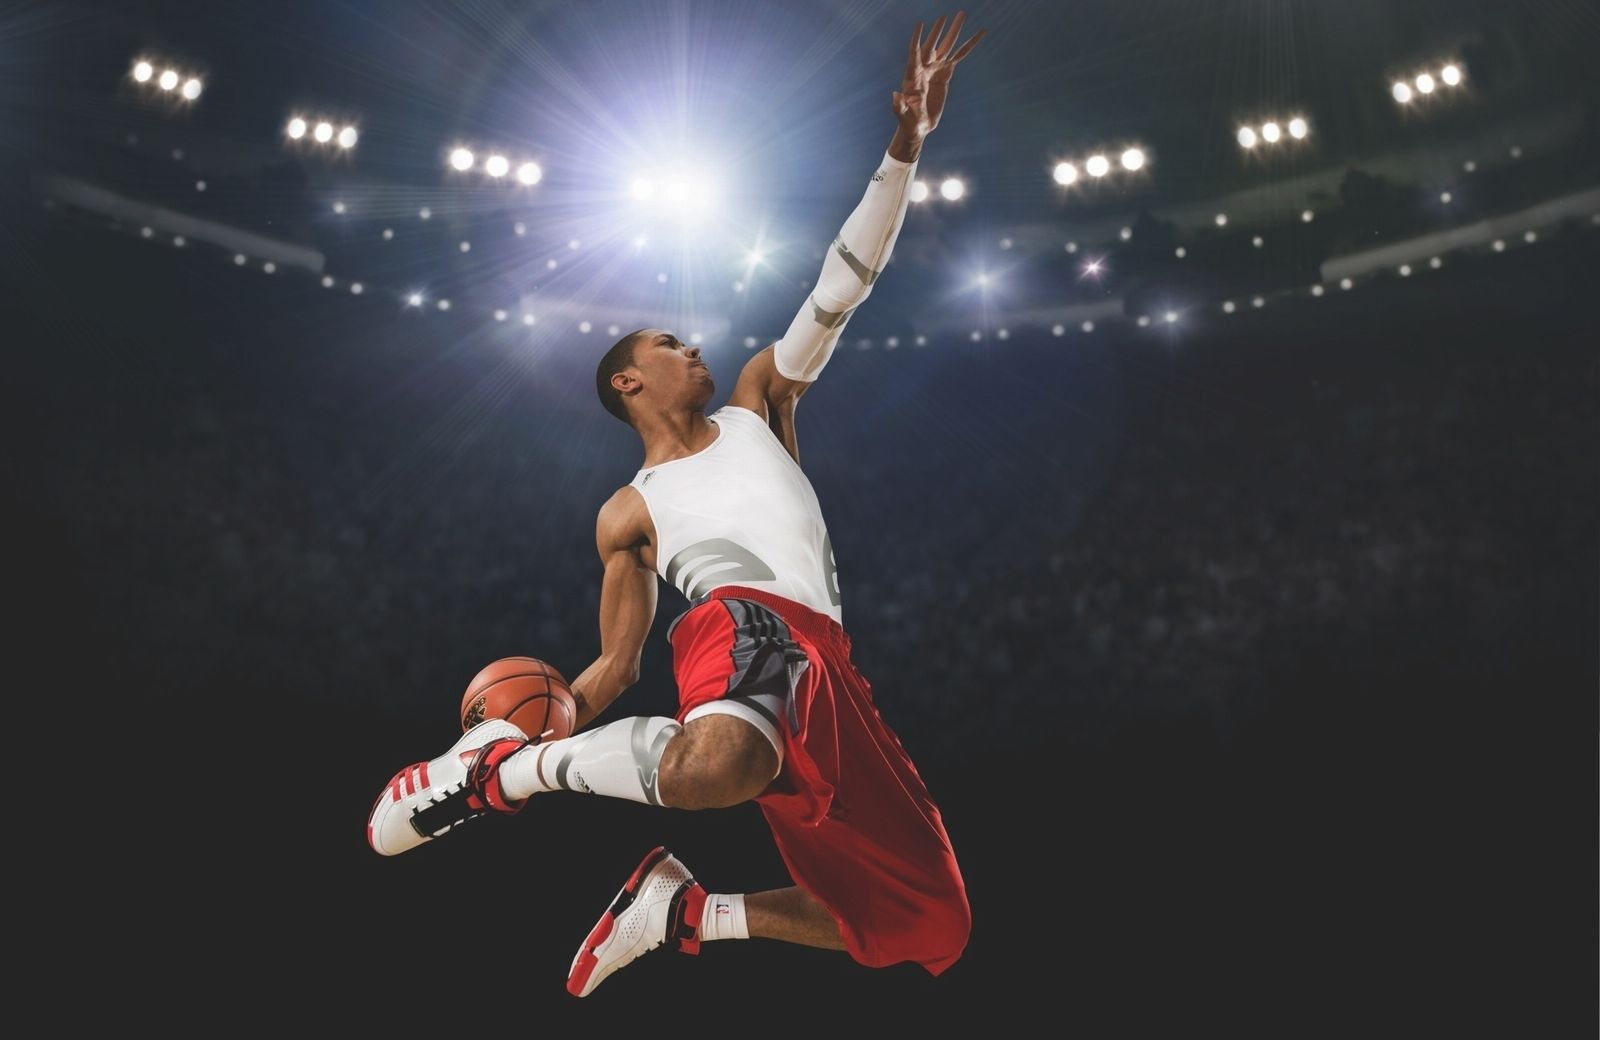 Nike Basketball Full HD Pics Wallpapers